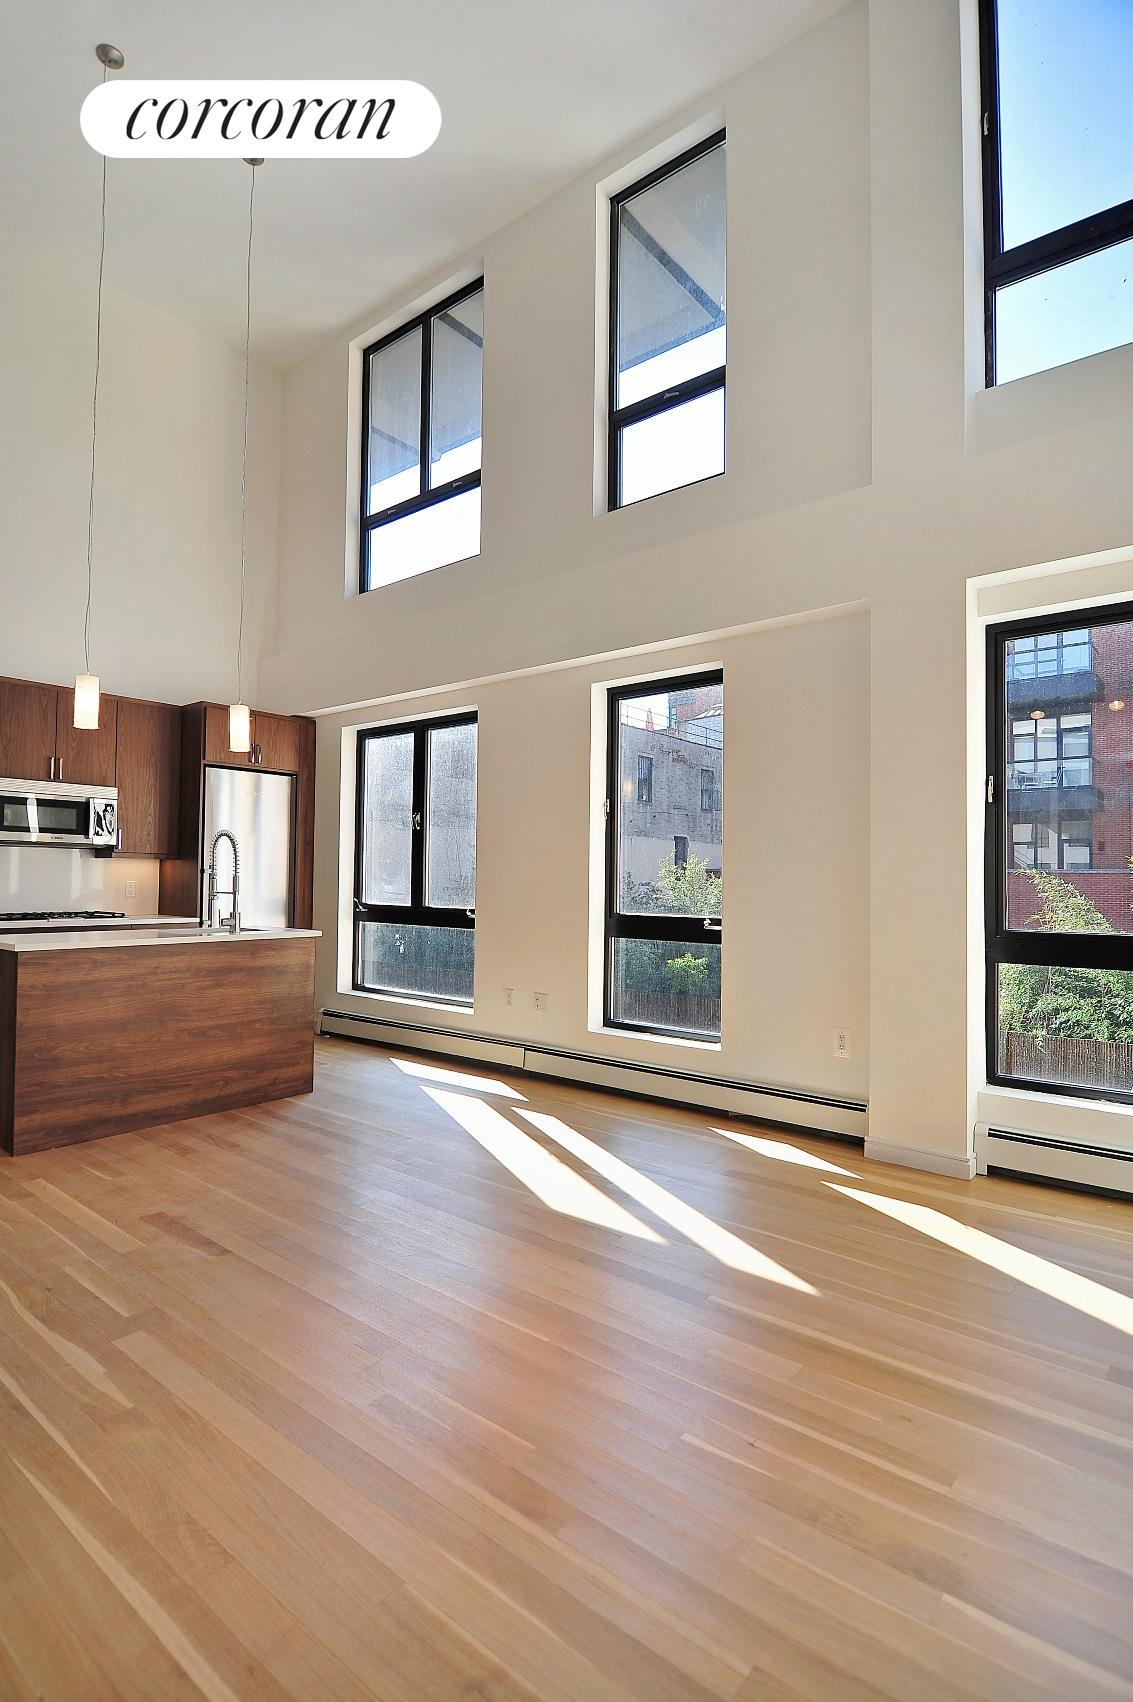 170 North 5th Street, Apt. 170-2A, Williamsburg